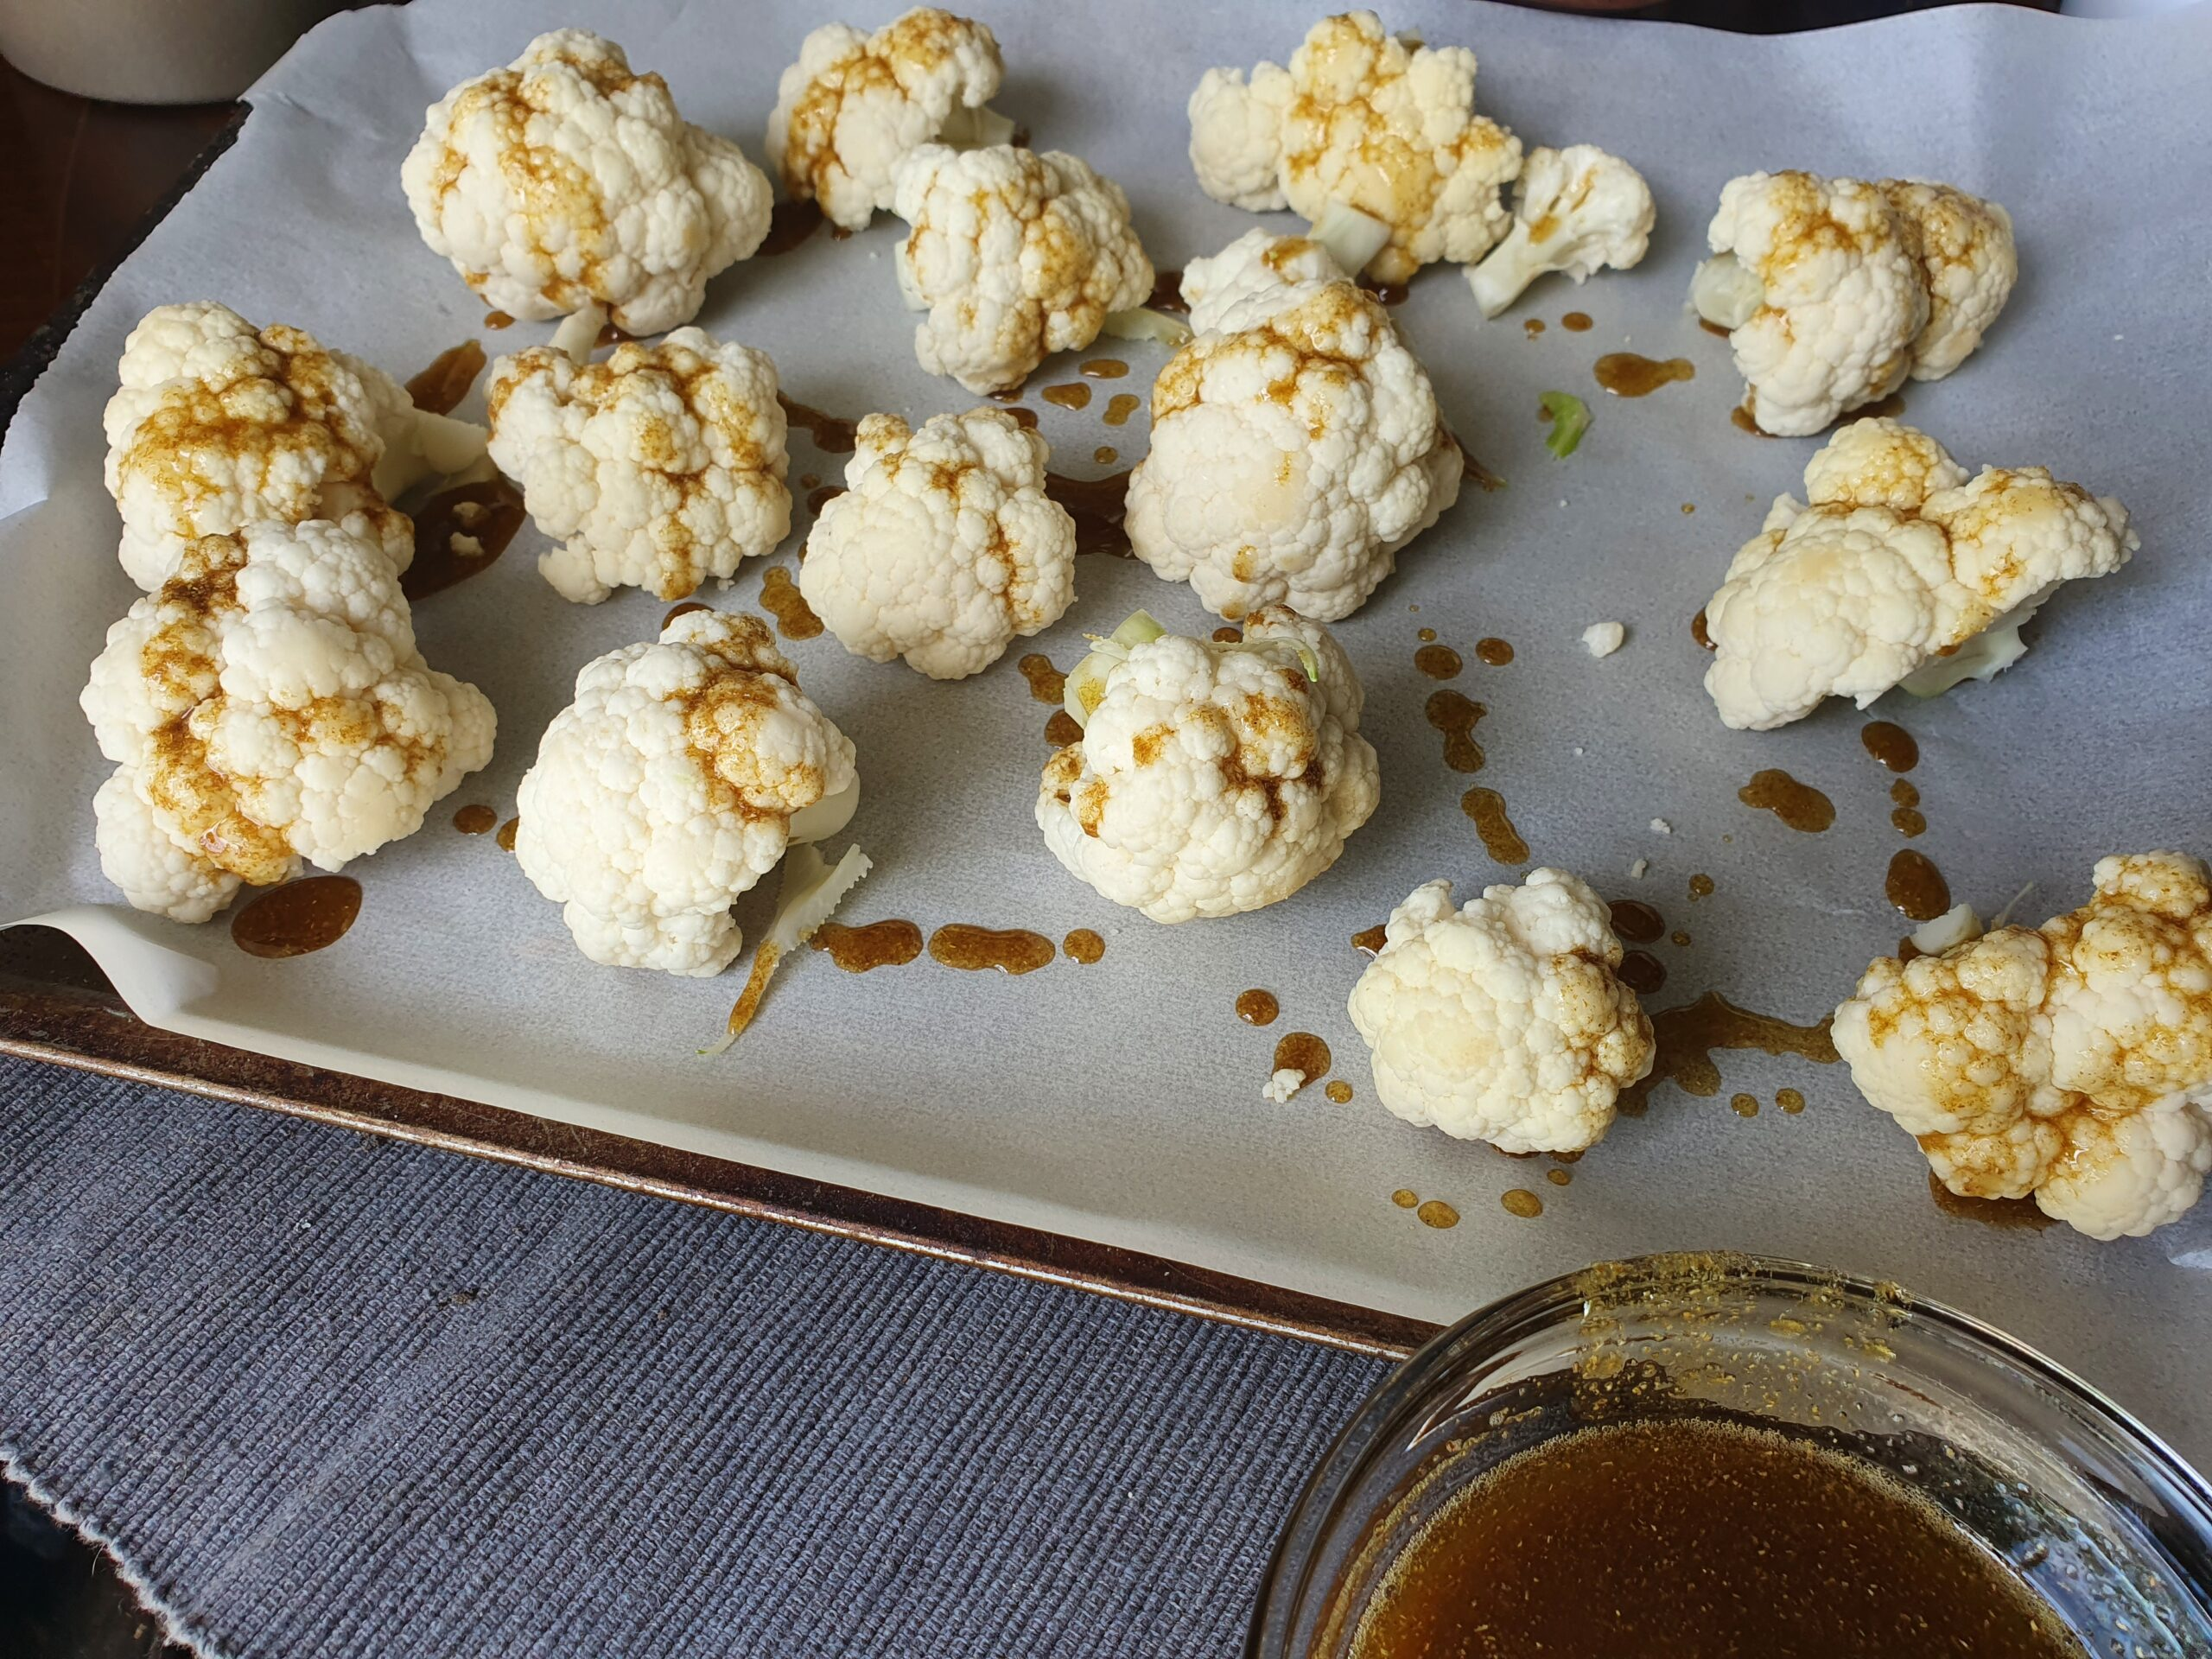 The cauliflower on the baking sheet has been sprinkled with the spice and olive oil mixture